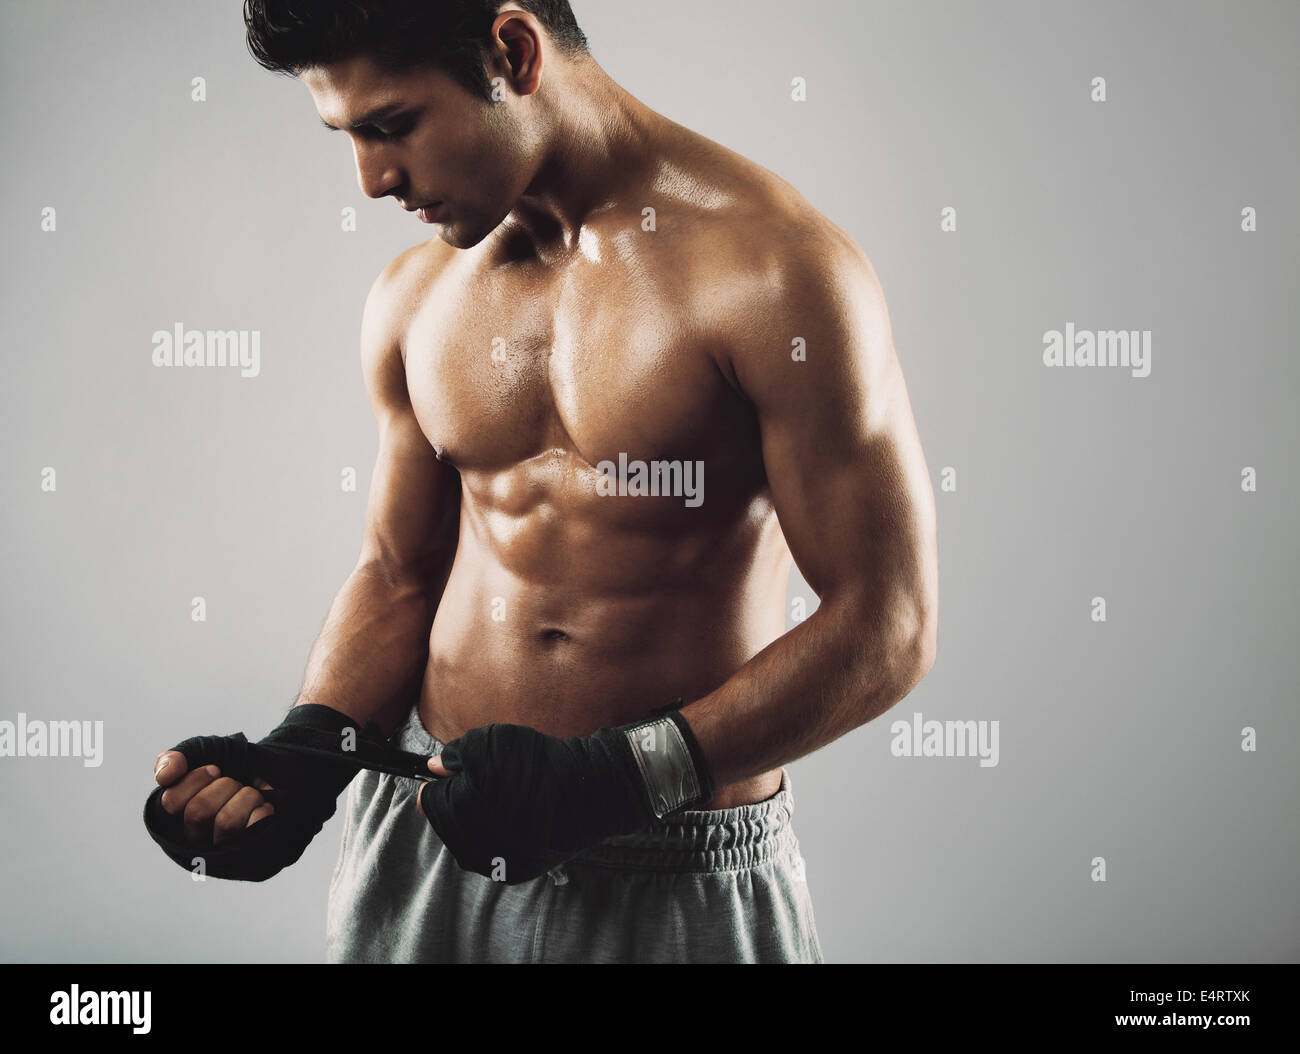 Young male boxer wrapping his hands in boxing tape before a fight. Hispanic young male fitness model. - Stock Image